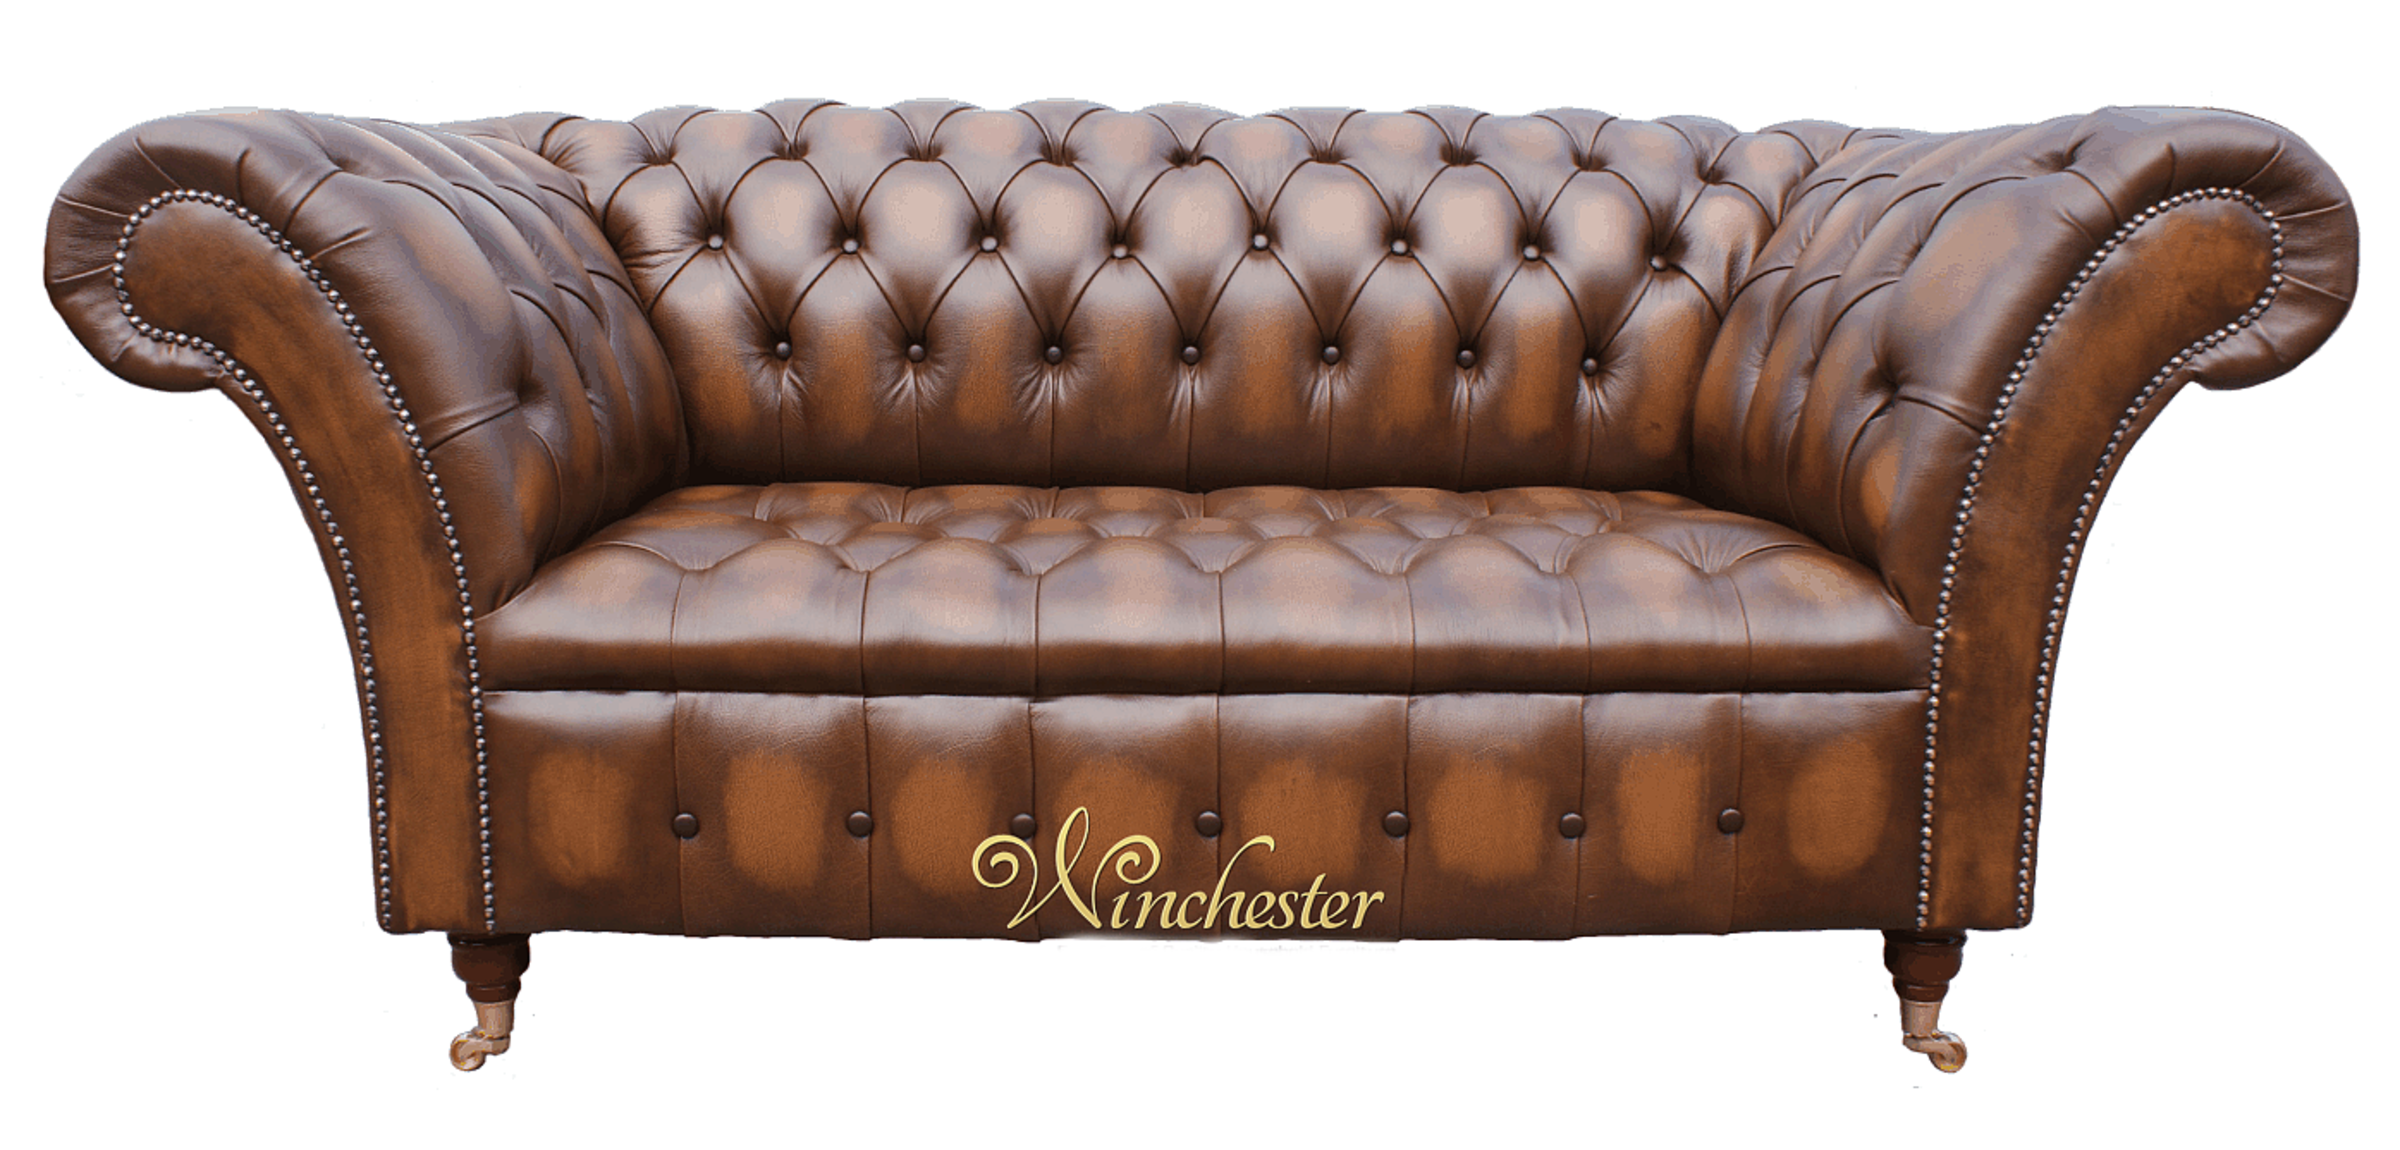 Chesterfield Balmoral 2 Seater Sofa Settee Antique Tan Leather, Traditional  Sofas